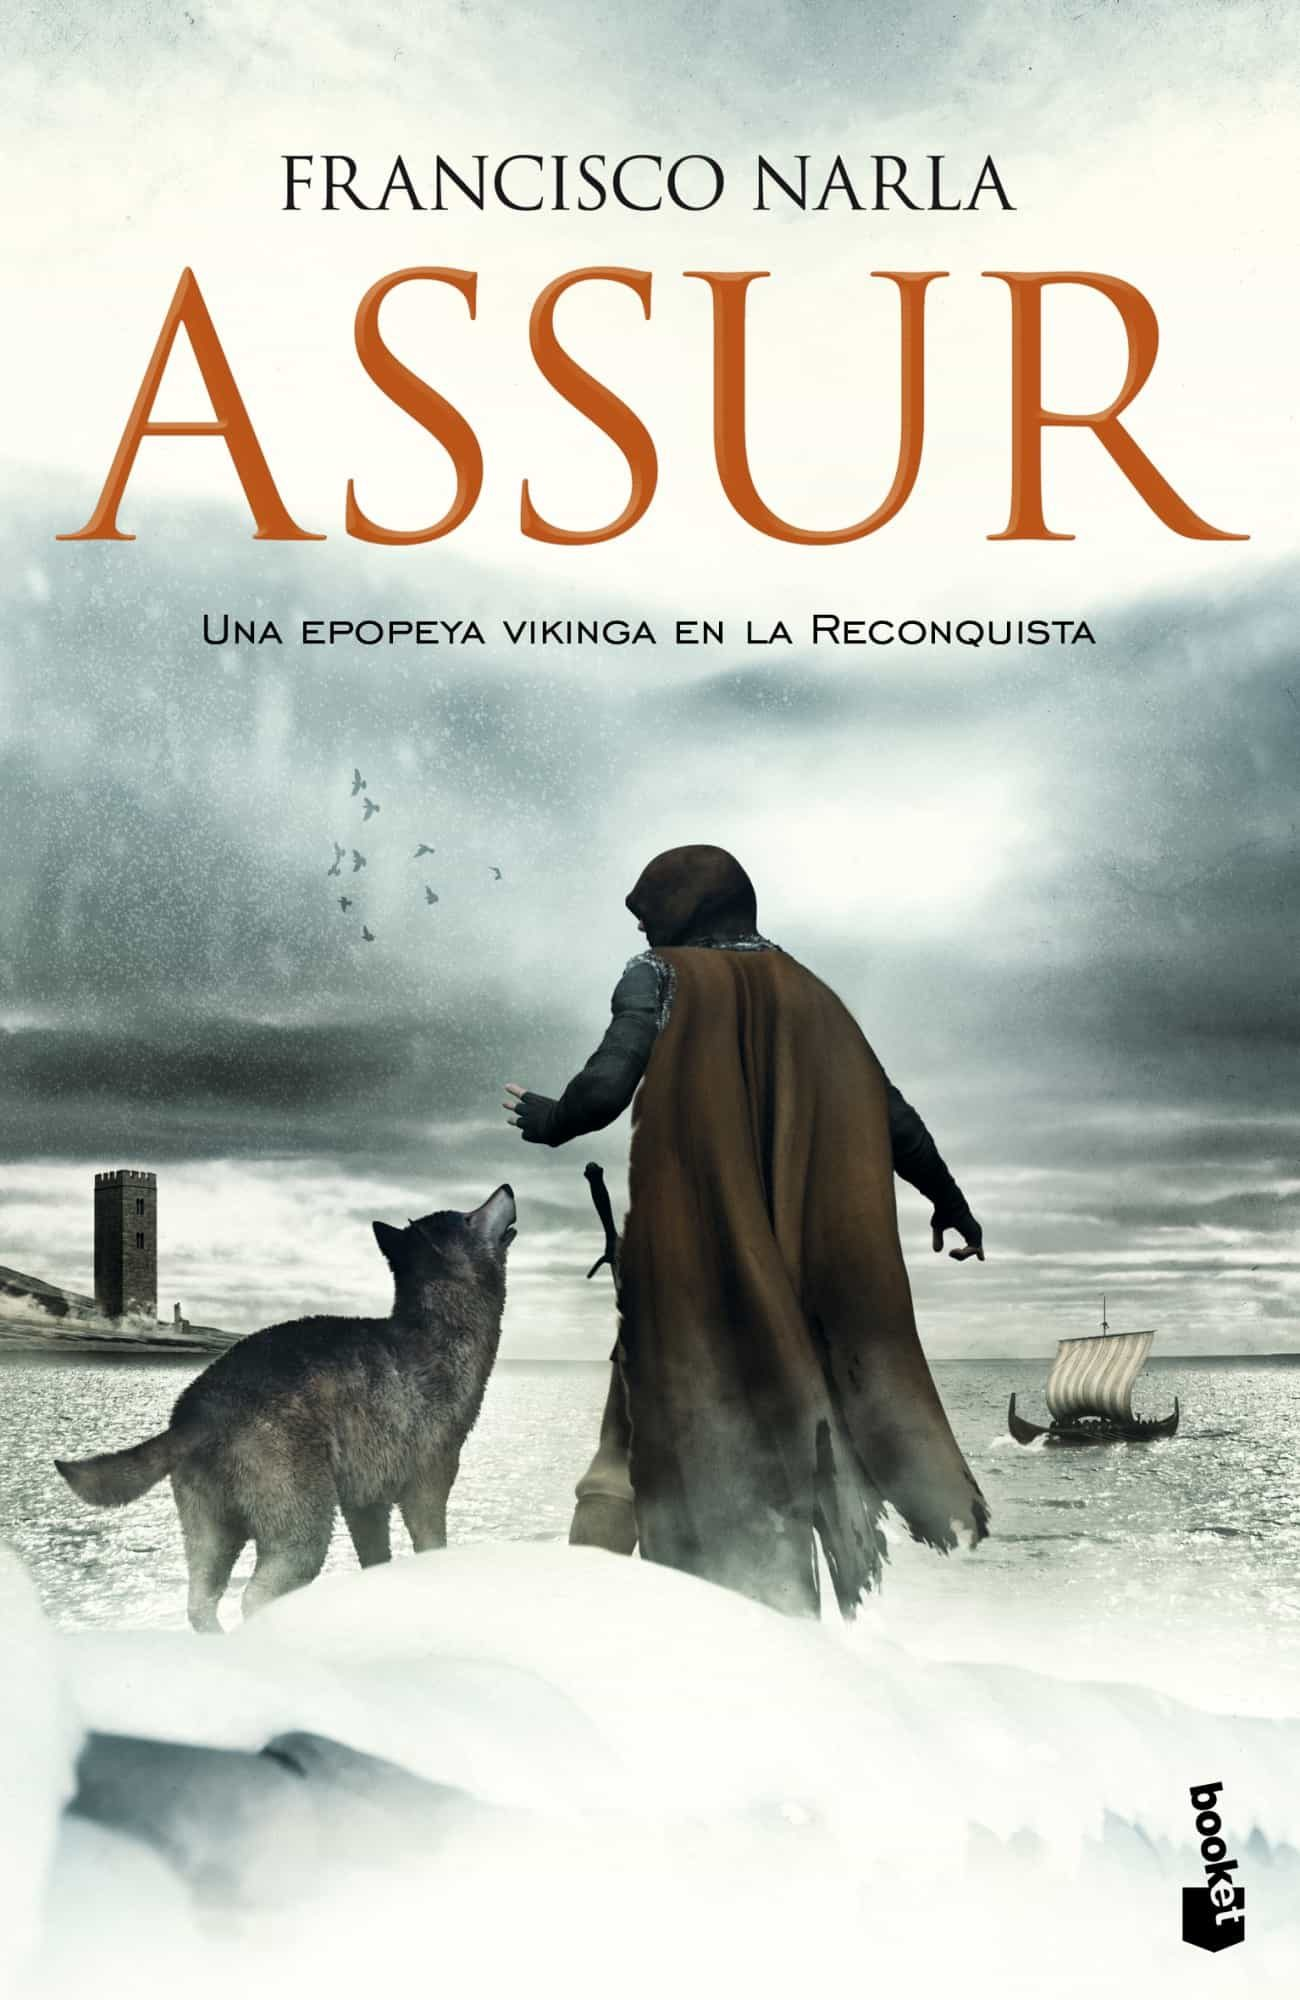 assur-francisco narla-9788499982939